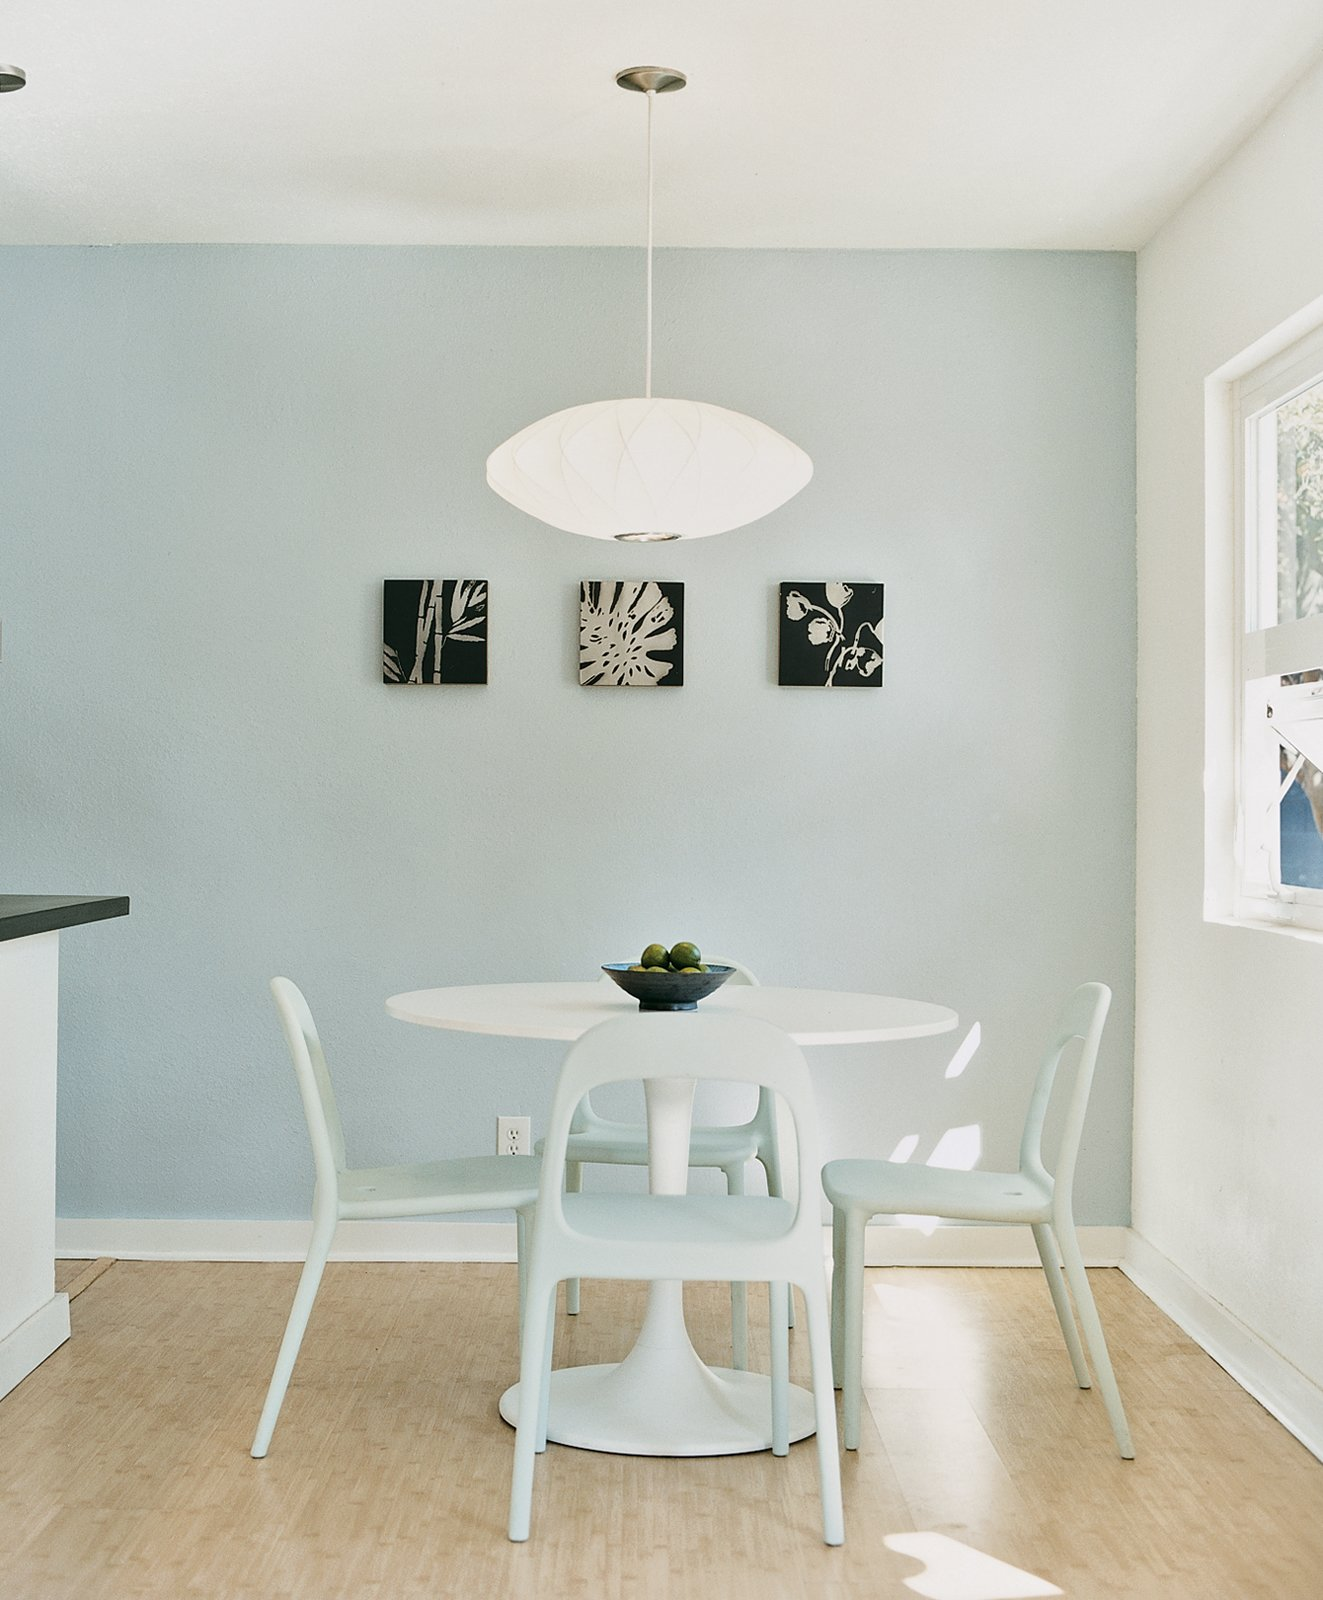 Due to the tight budget, the fixtures and furnishings had to be a mix of high and low. Instead of a Saarinen Tulip table for the dining room, they found a similar style with matching chairs from Ikea, then hung a George Nelson lamp overhead. Tagged: Dining Room, Chair, Table, and Pendant Lighting.  Photo 4 of 6 in Affordable Modern House Built with Sheer Determination